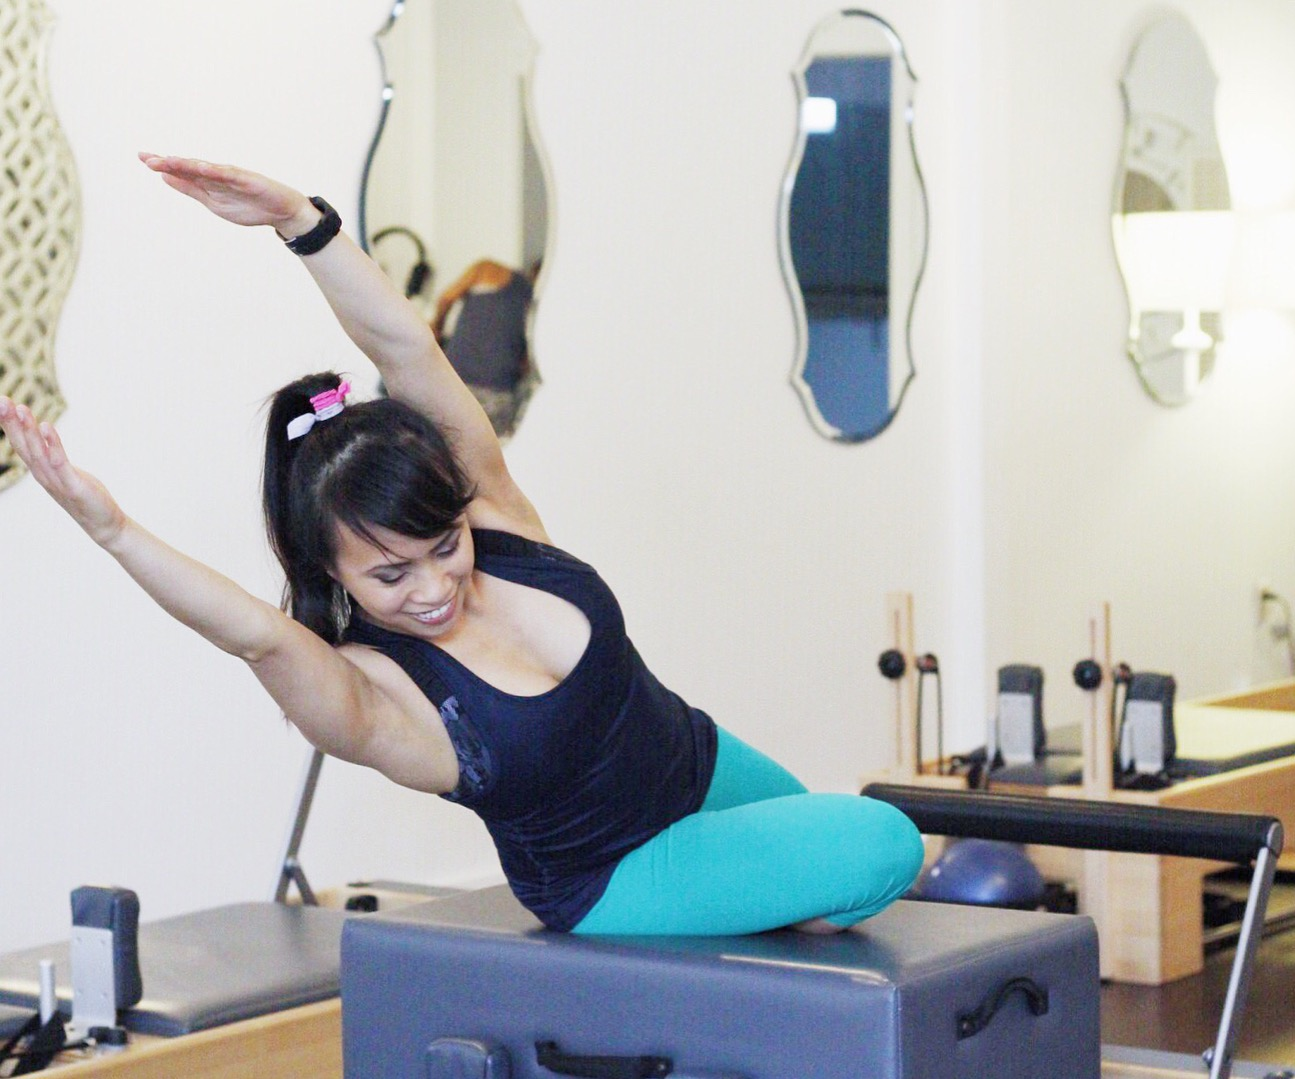 mint-studios-pilates-reformer_berniedette-of-petite-and-toned_3